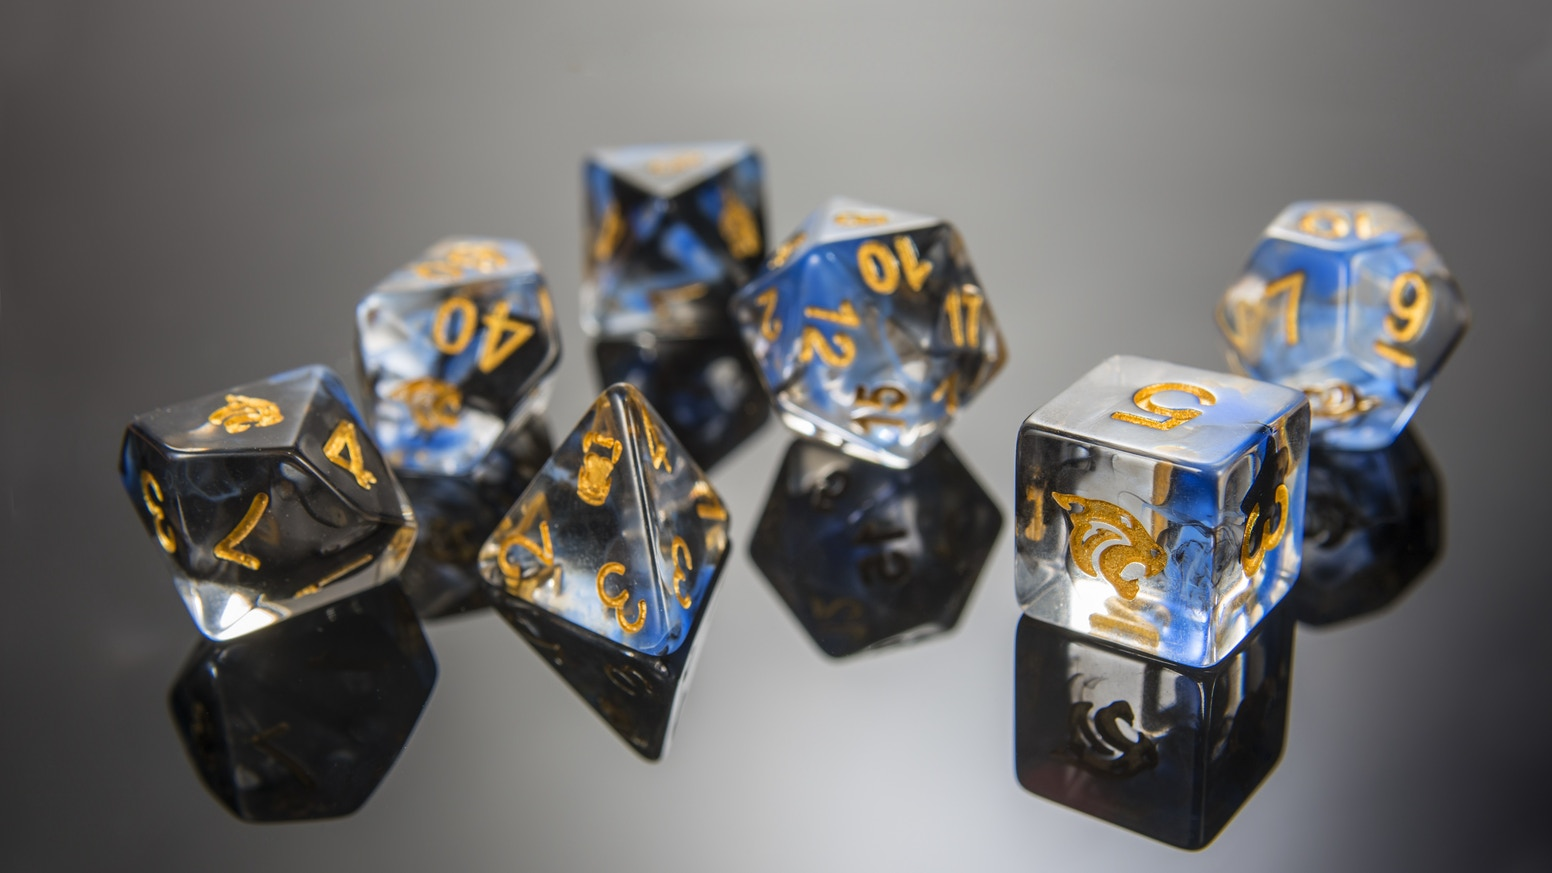 Spirits trapped inside a 2 tone swirl translucent polyhedral Dice set. Which spirit will you choose?